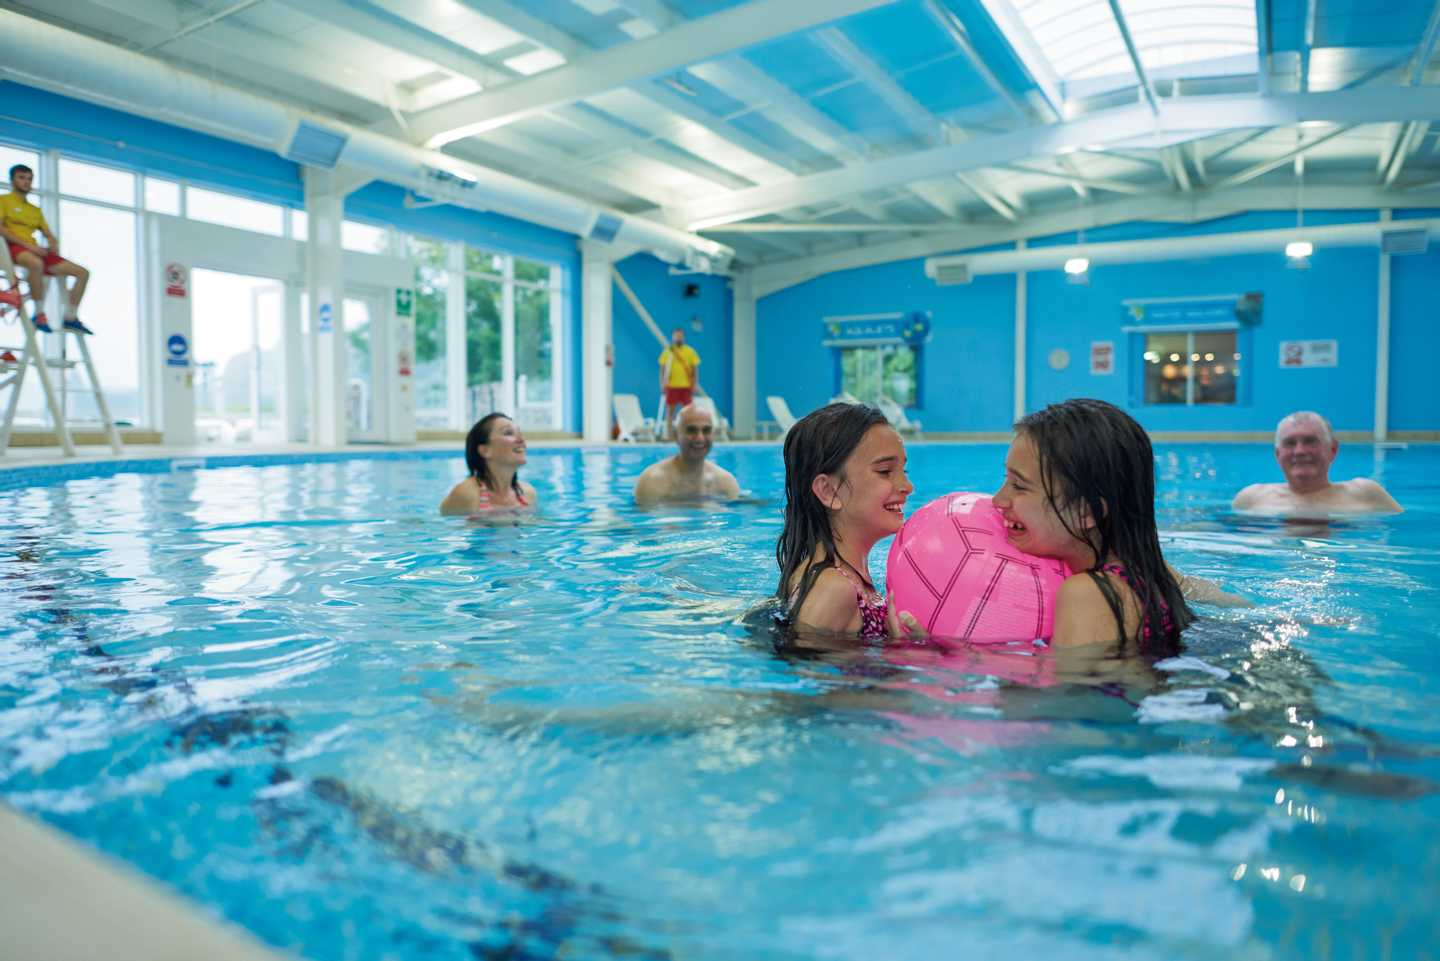 Guests playing games in the indoor pool